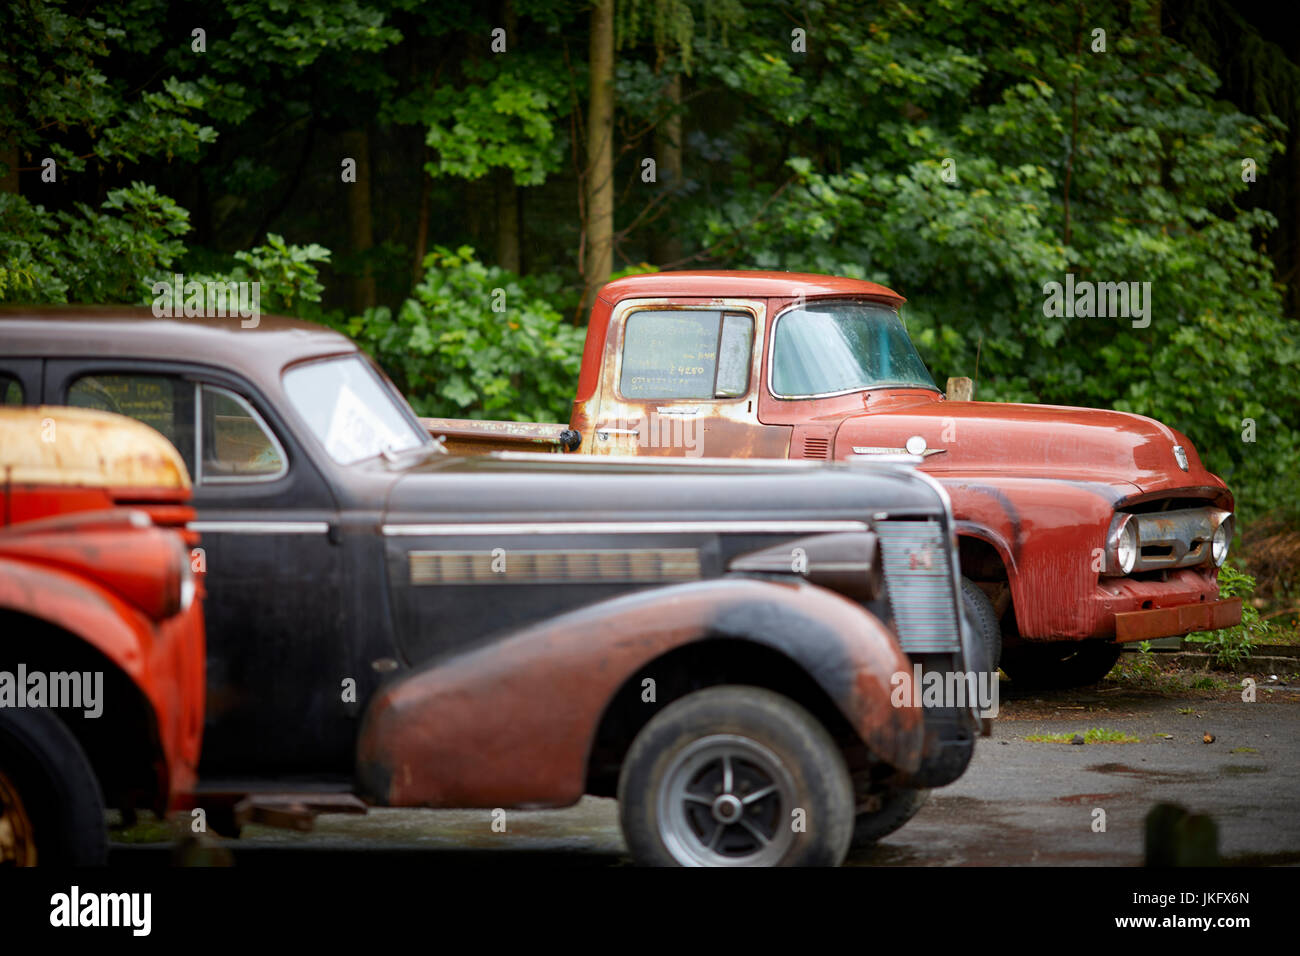 rustyOld american classic cars in need of restoration for sale near ...